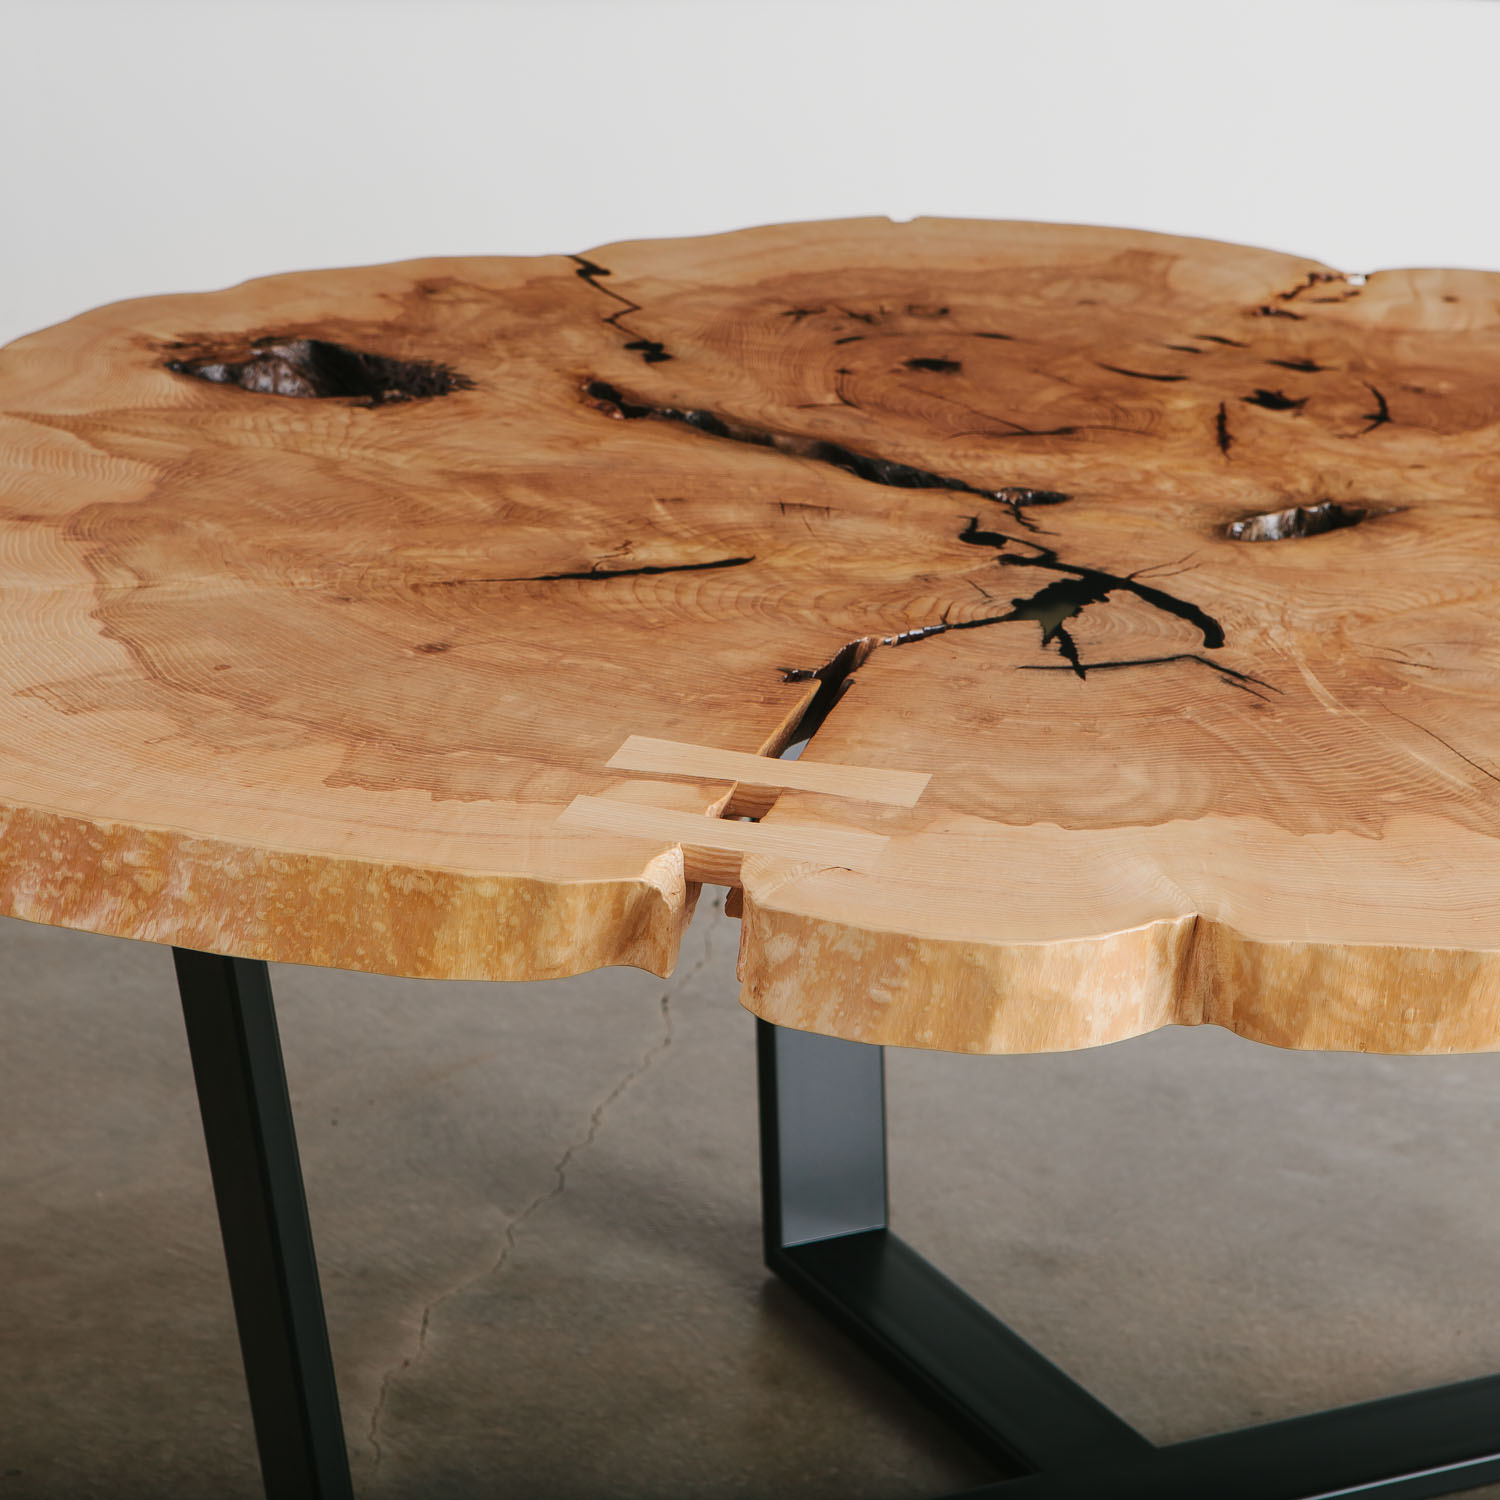 Live edge cross cut ash dining table with natural tree elements